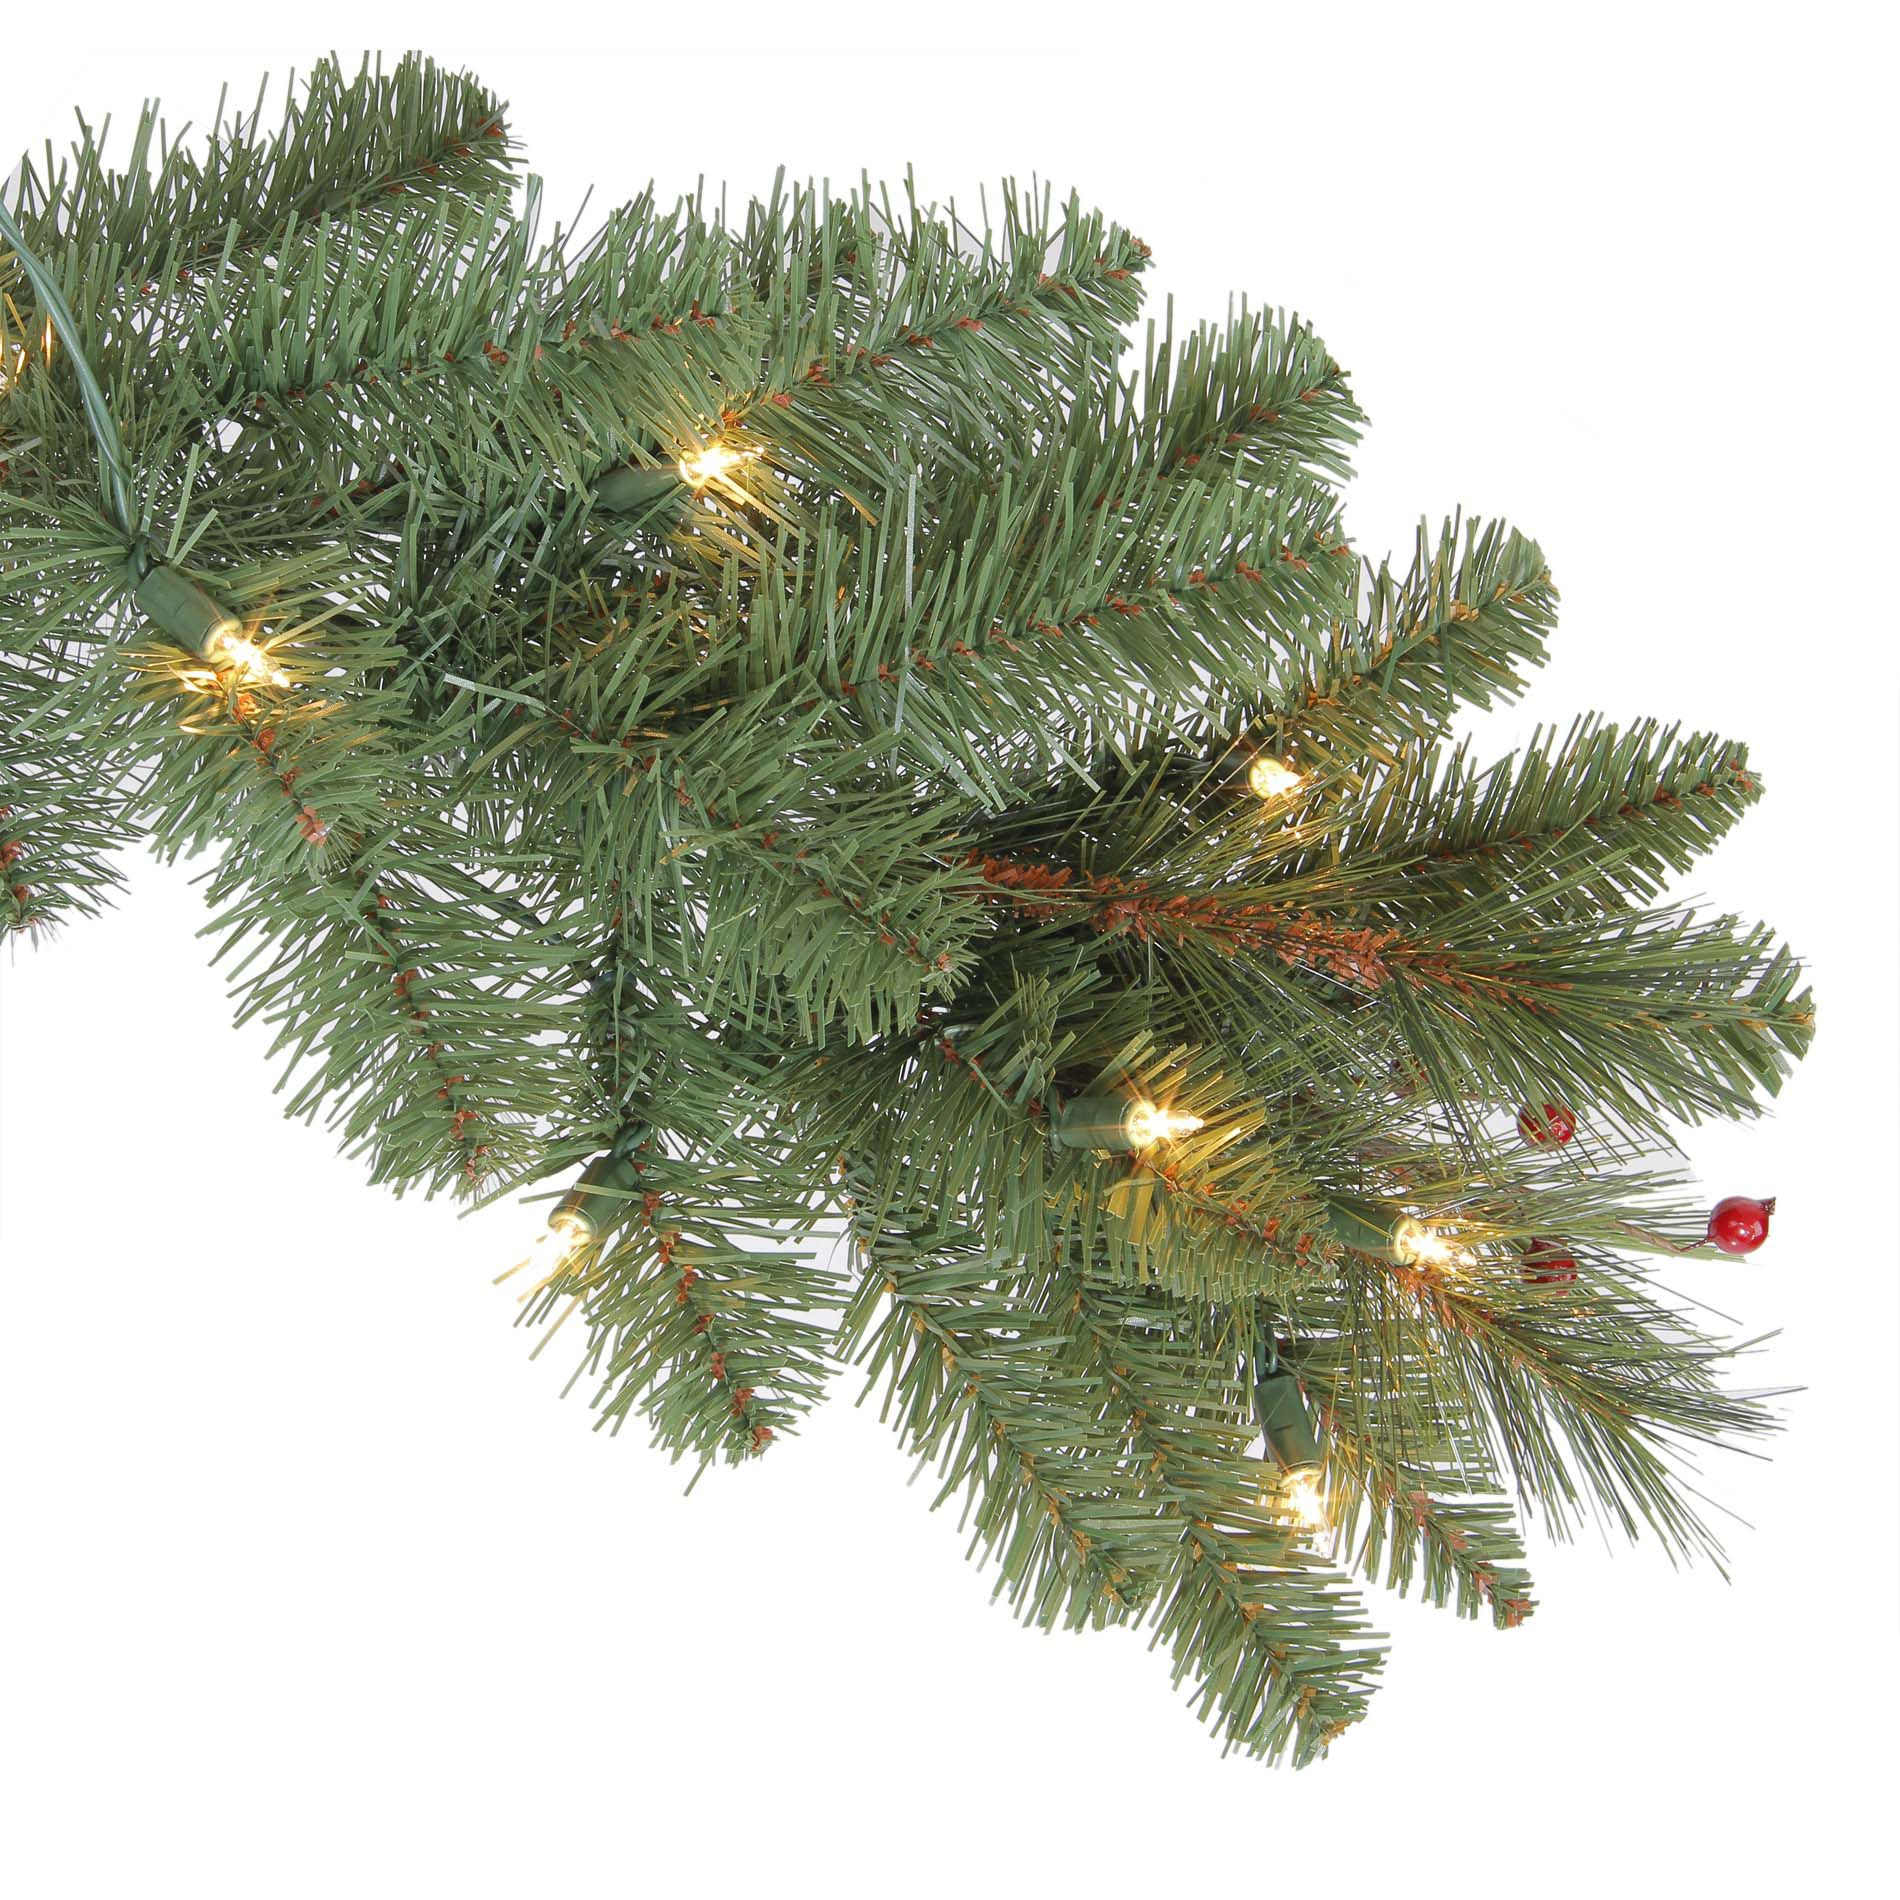 Donner and Blitzen 7.5' 600 Clear Light Pre-lit Kensington Pine Christmas Tree